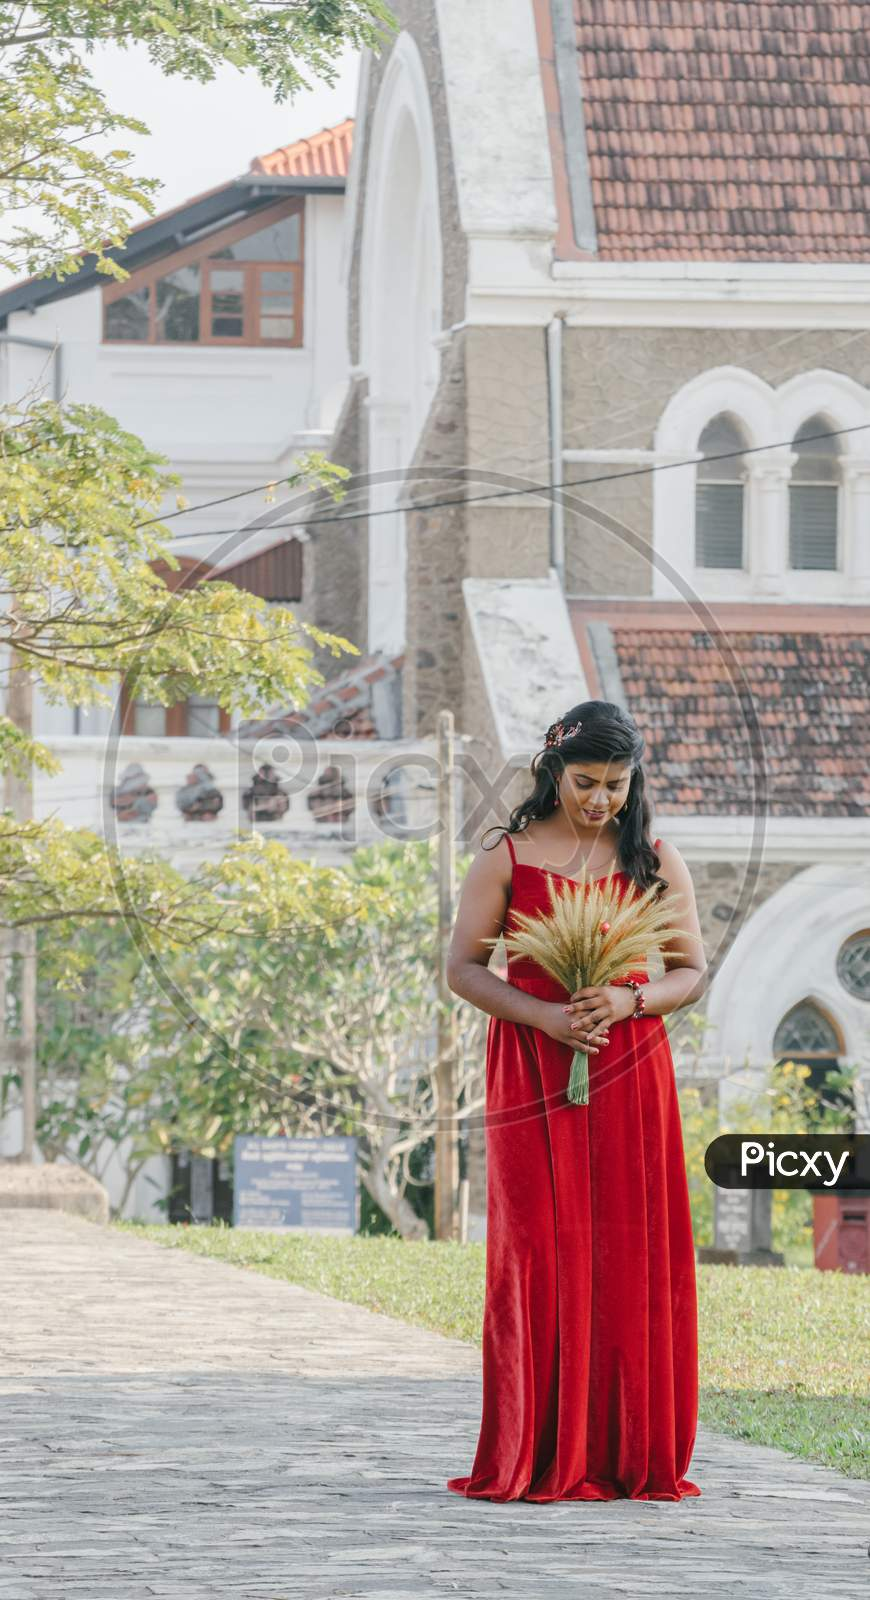 Galle, Sri Lanka - 02 12 2021: Young Beautiful Model In Long Red Dress Posing For A Photoshoot In The Streets Of Galle Fort In Front Of Famous All Saint'S Church In The Background.